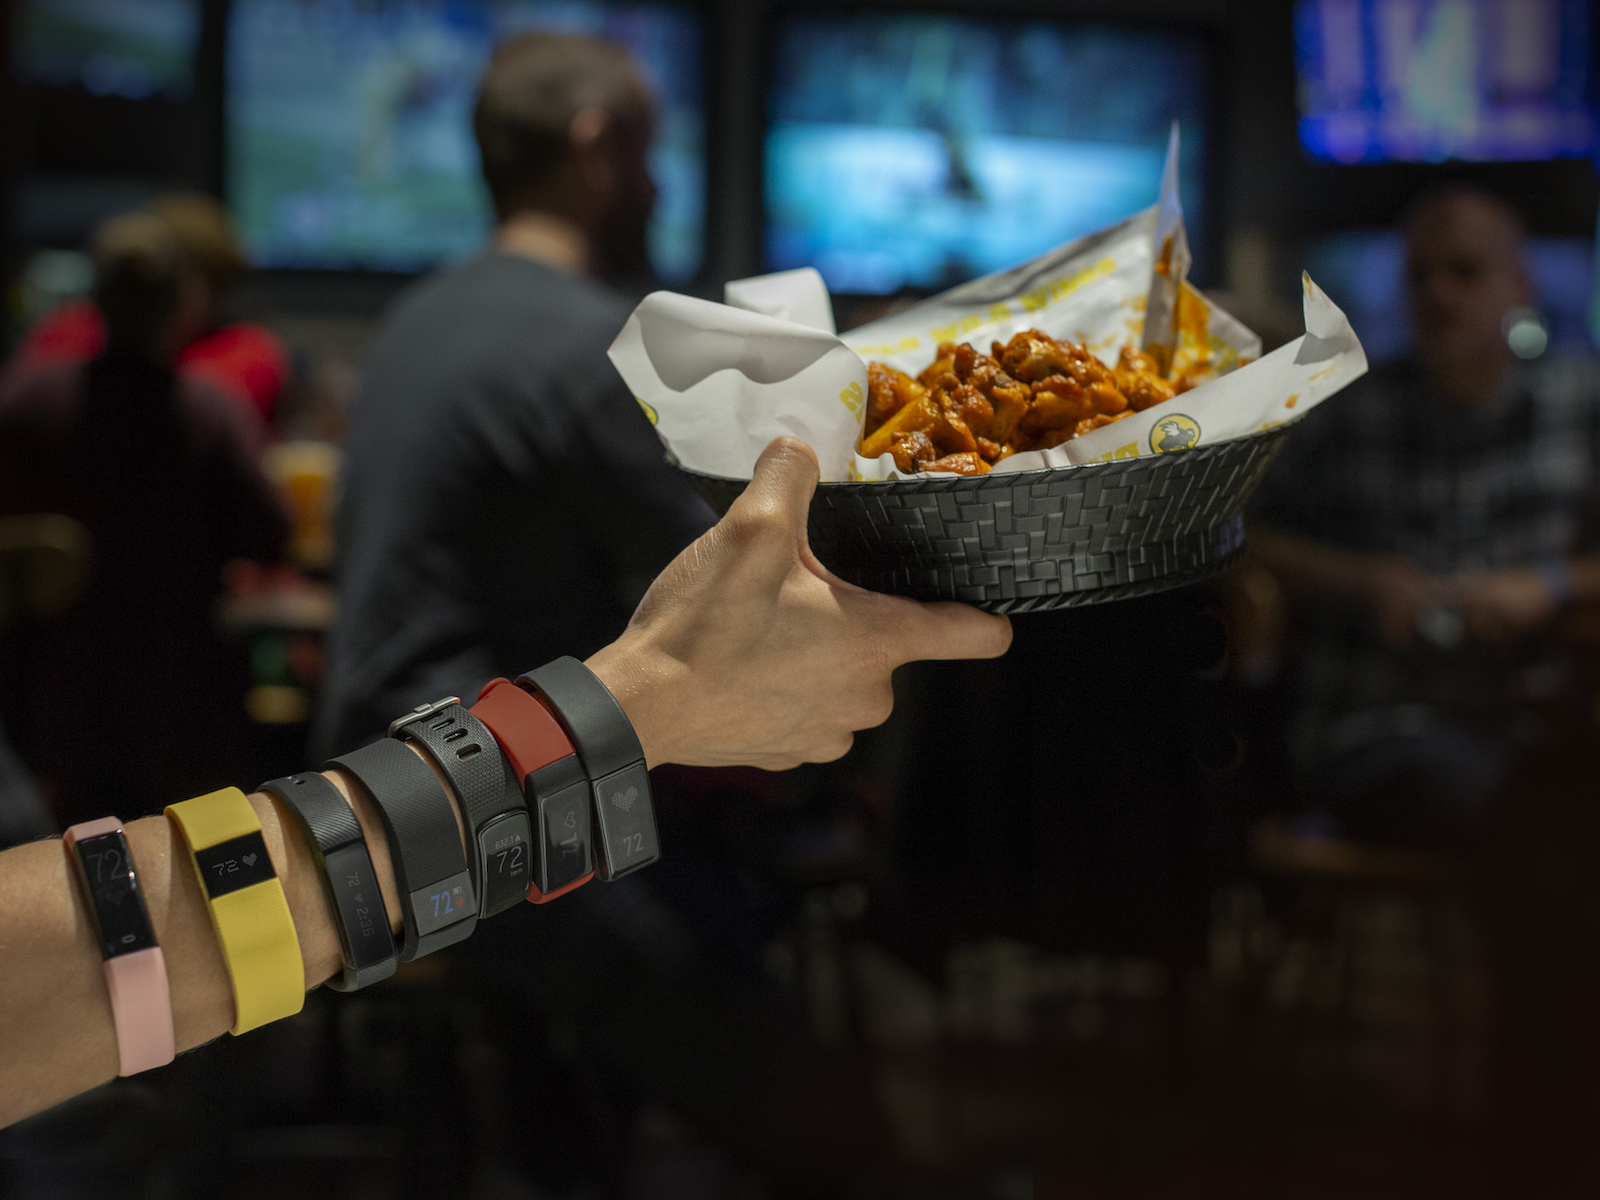 Buffalo Wild Wings Servers Will Wear Your Fitbit to Help You 'Workout' While You Watch Bowl Games